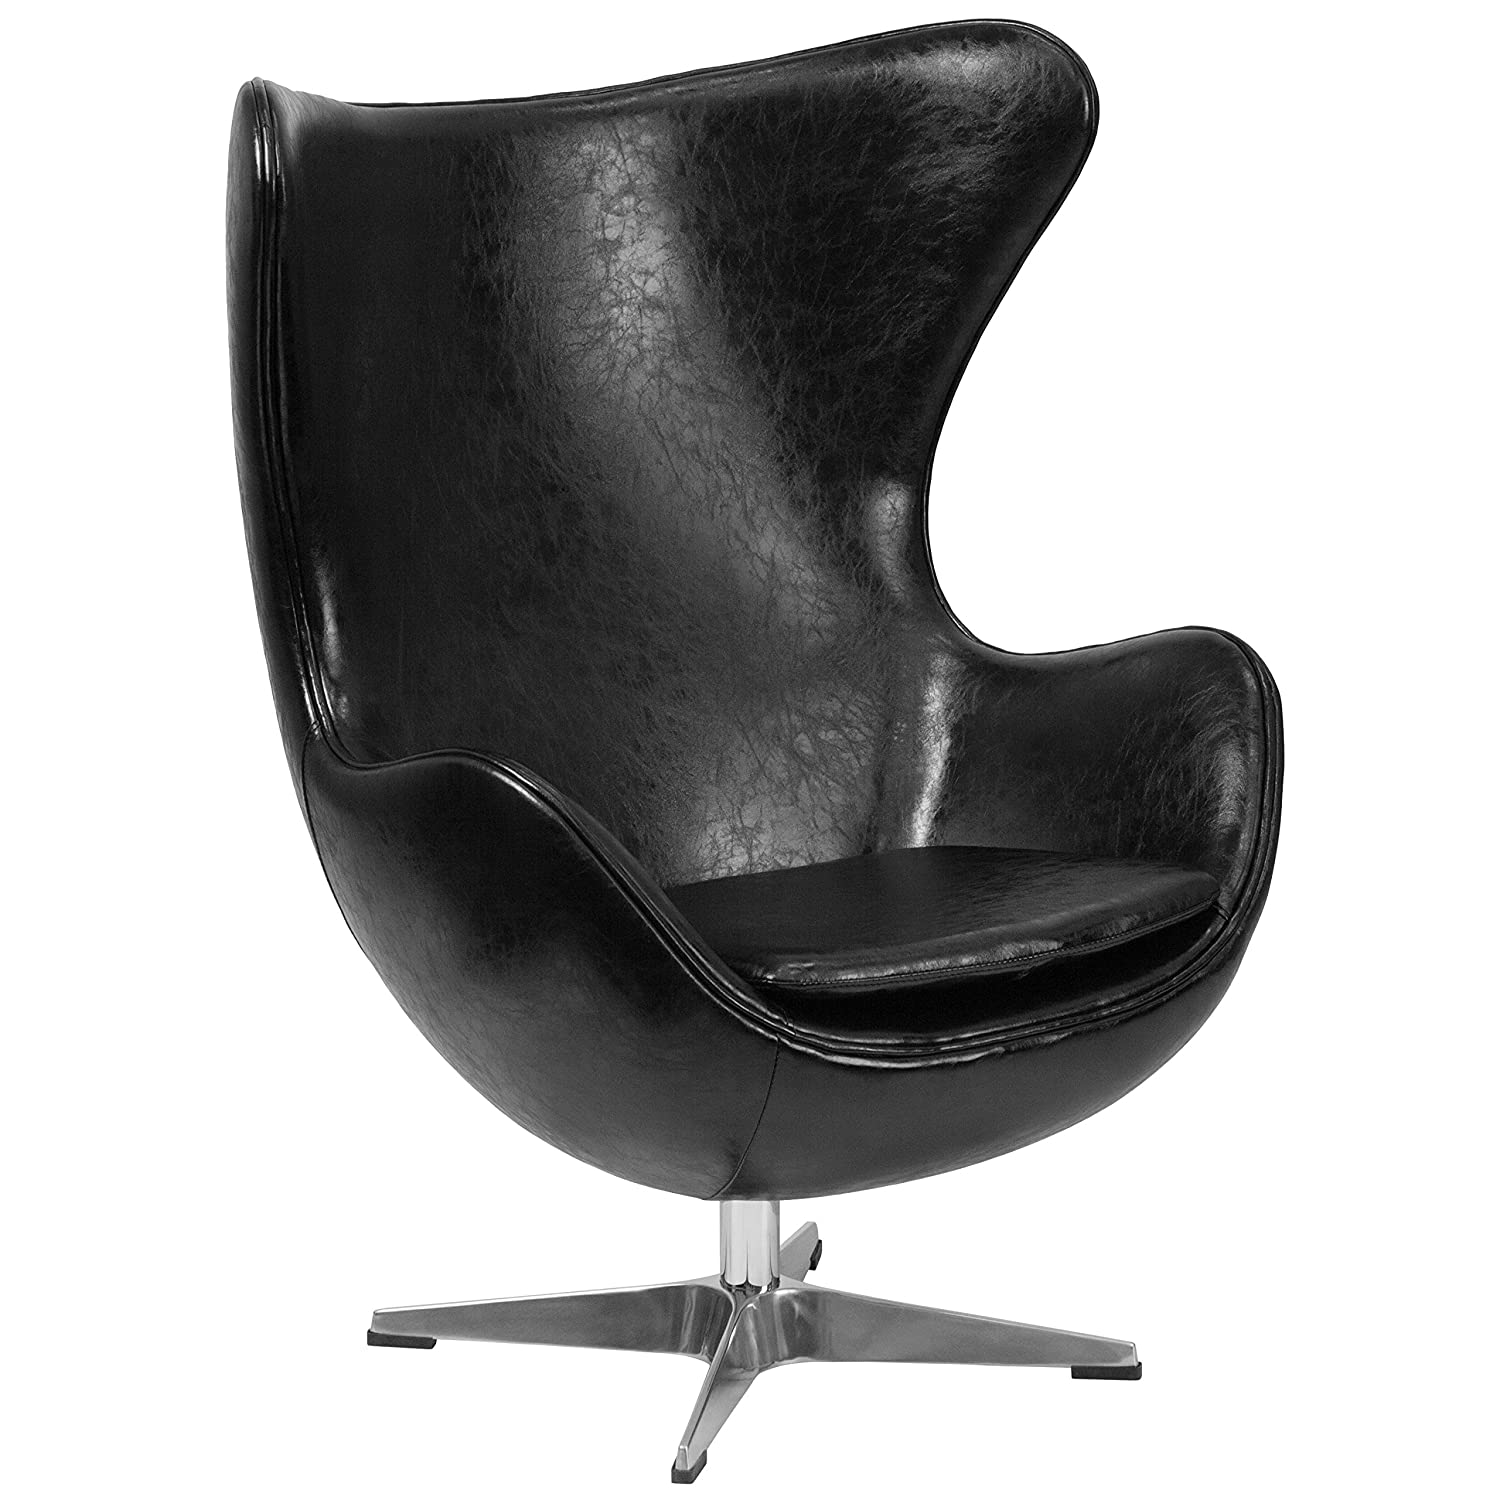 Design Egg Chair amazon com black leather egg chair vela retro lounge chairs kitchen dining